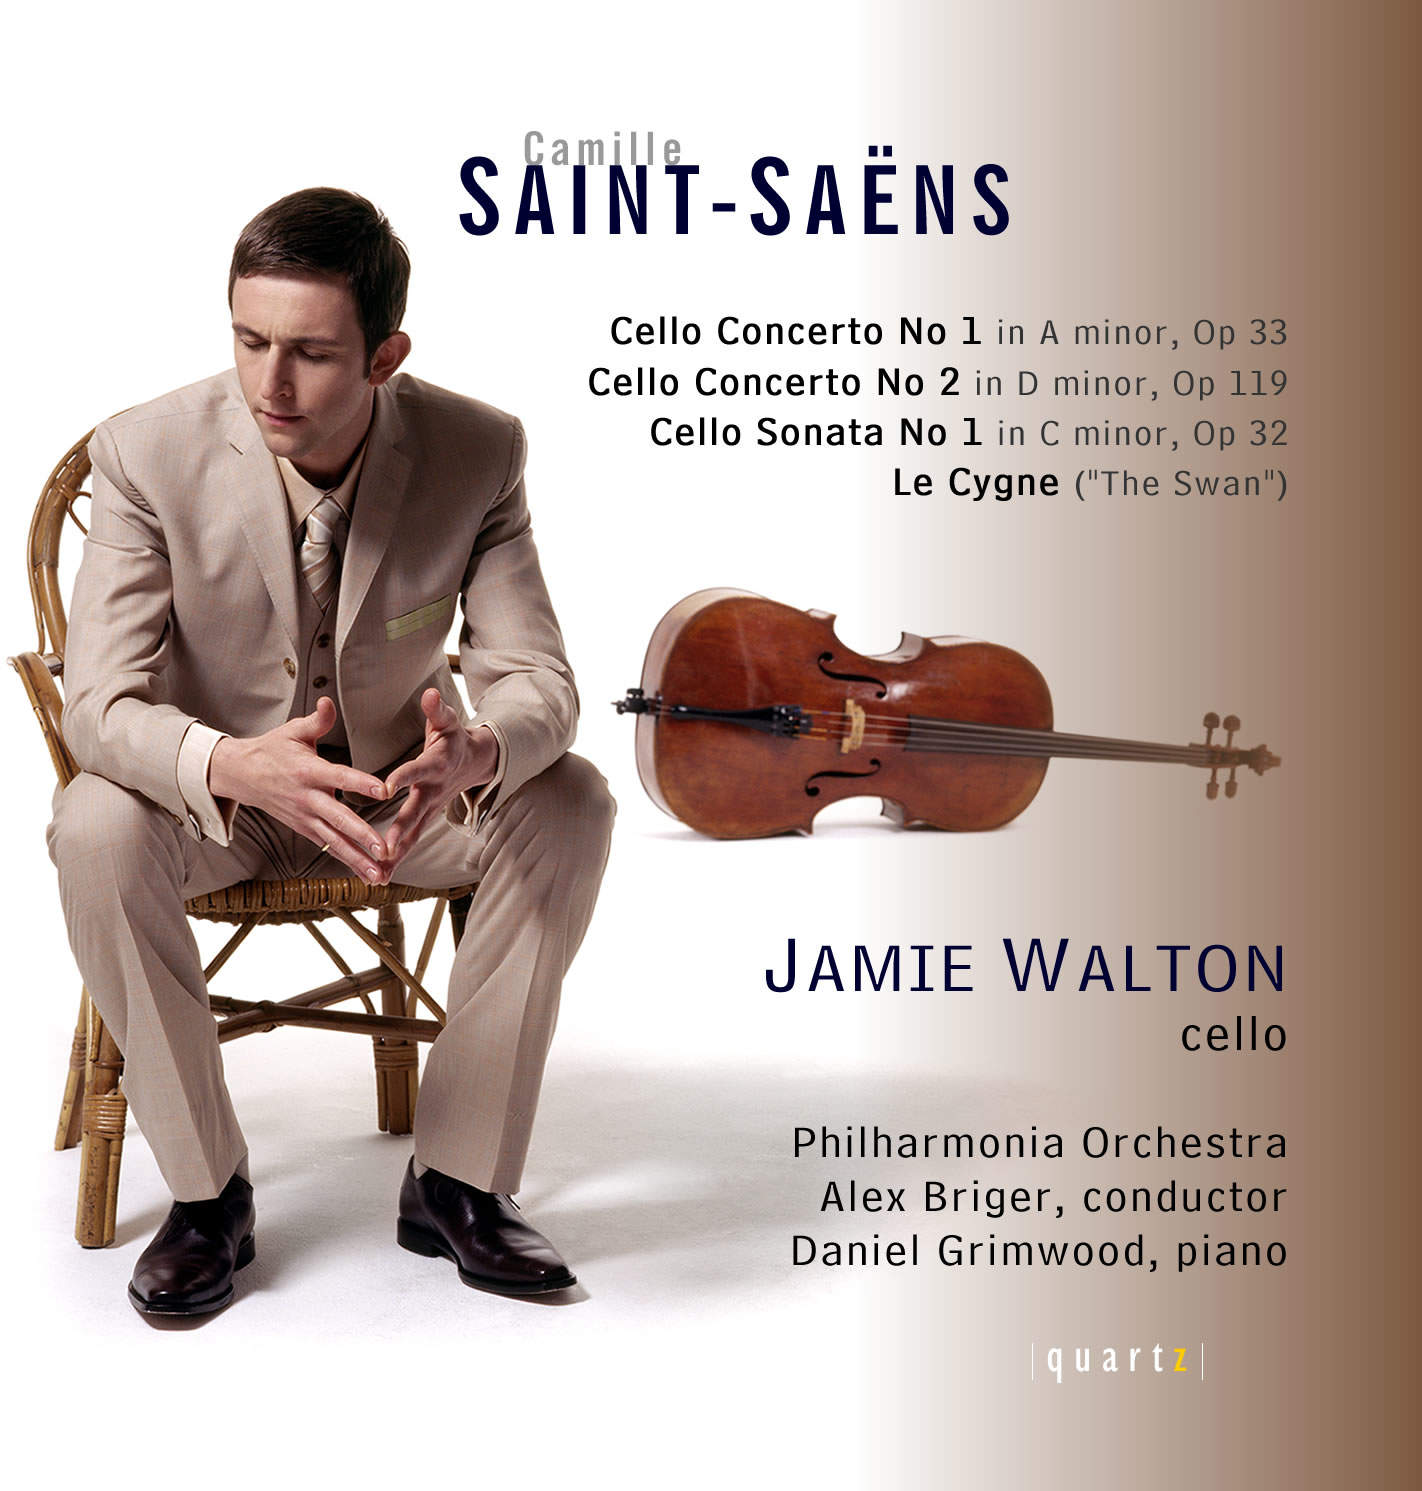 Jamie Walton (cello)